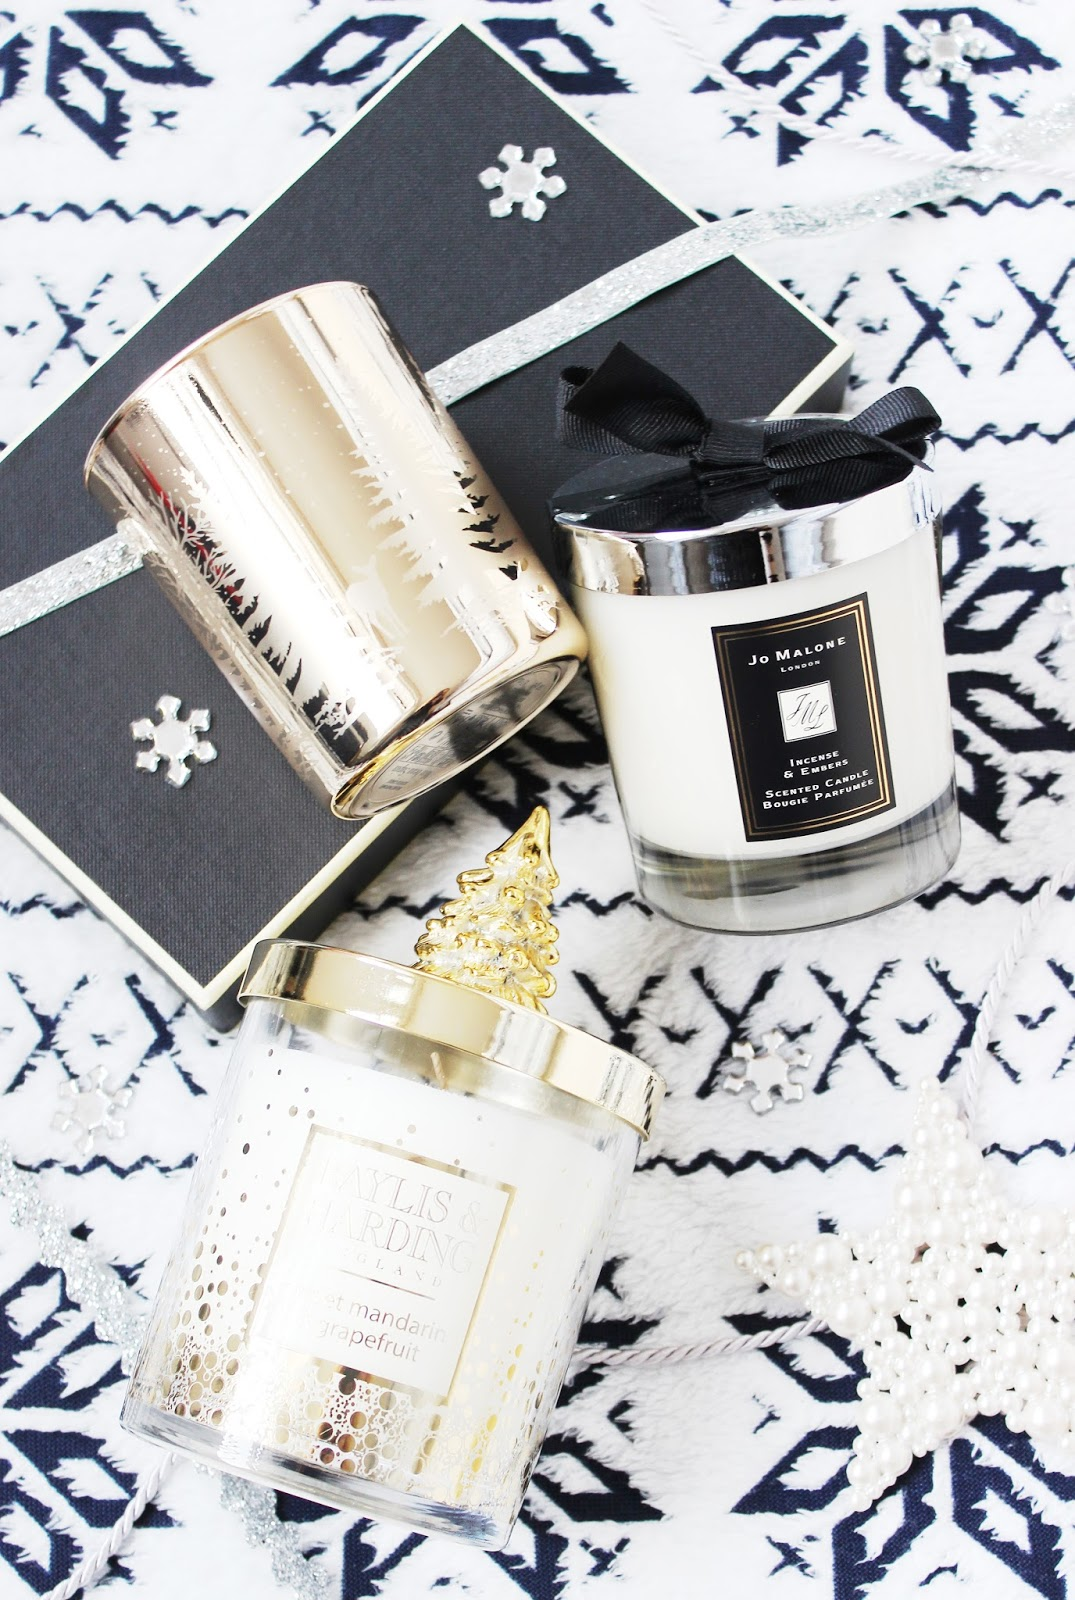 7of the best winter scented candles